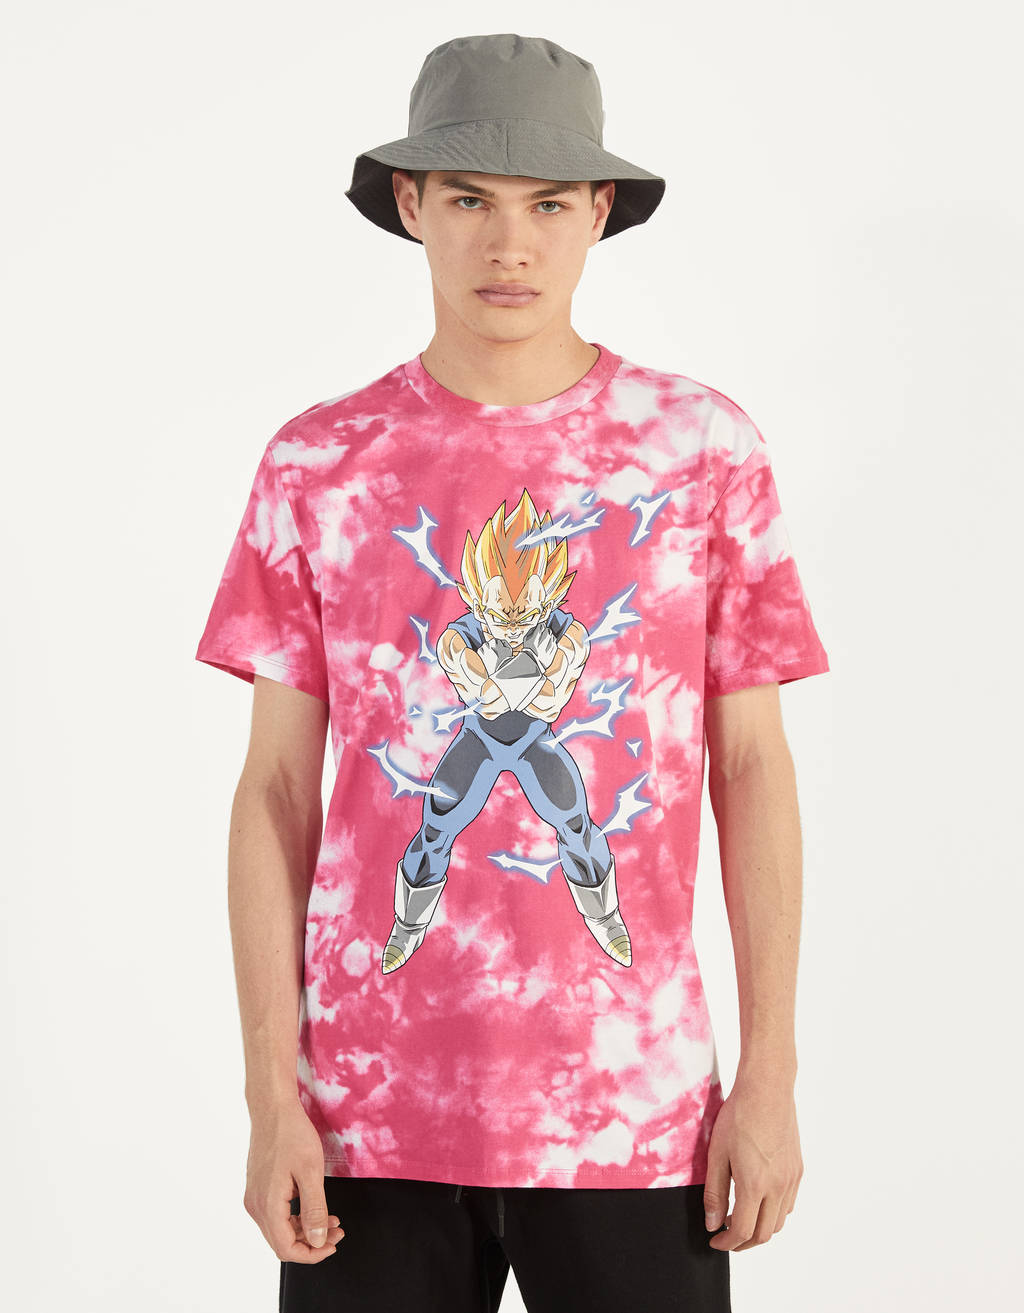 Μπλούζα tie dye Dragon Ball Z x Bershka